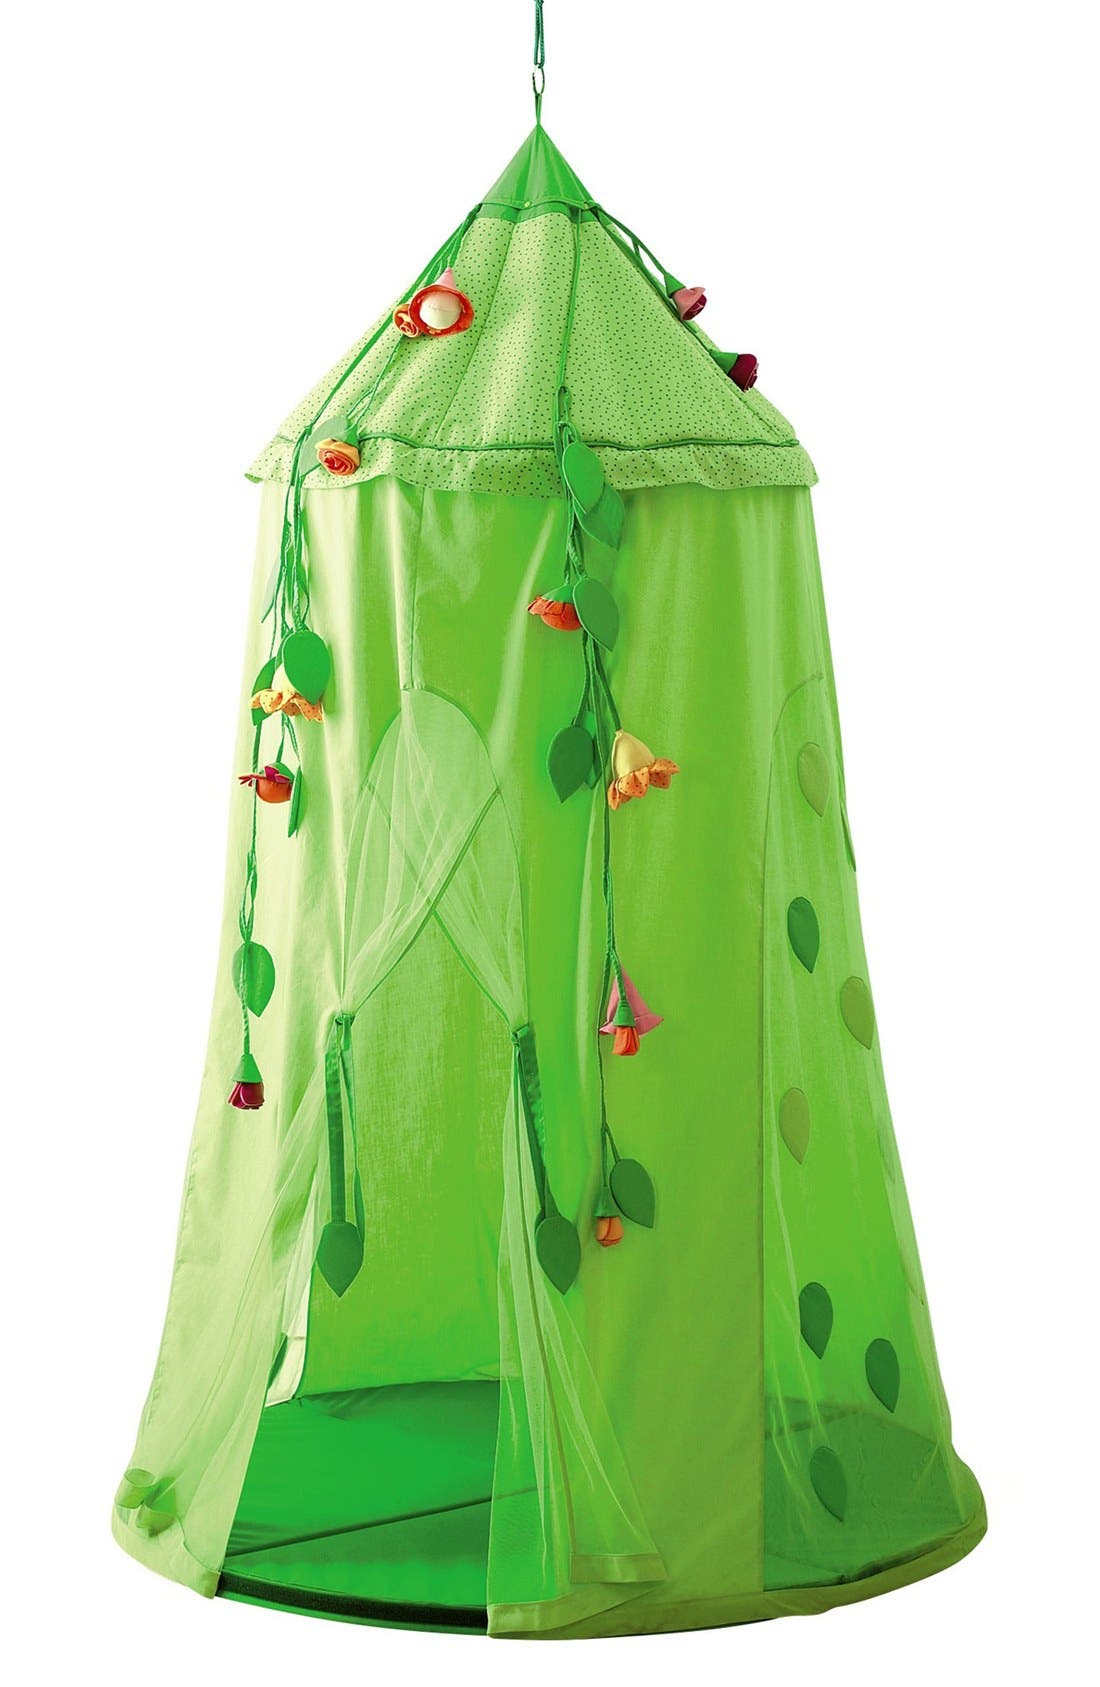 'Blossom Sky' Hanging Play Tent,                         Main,                         color, Green